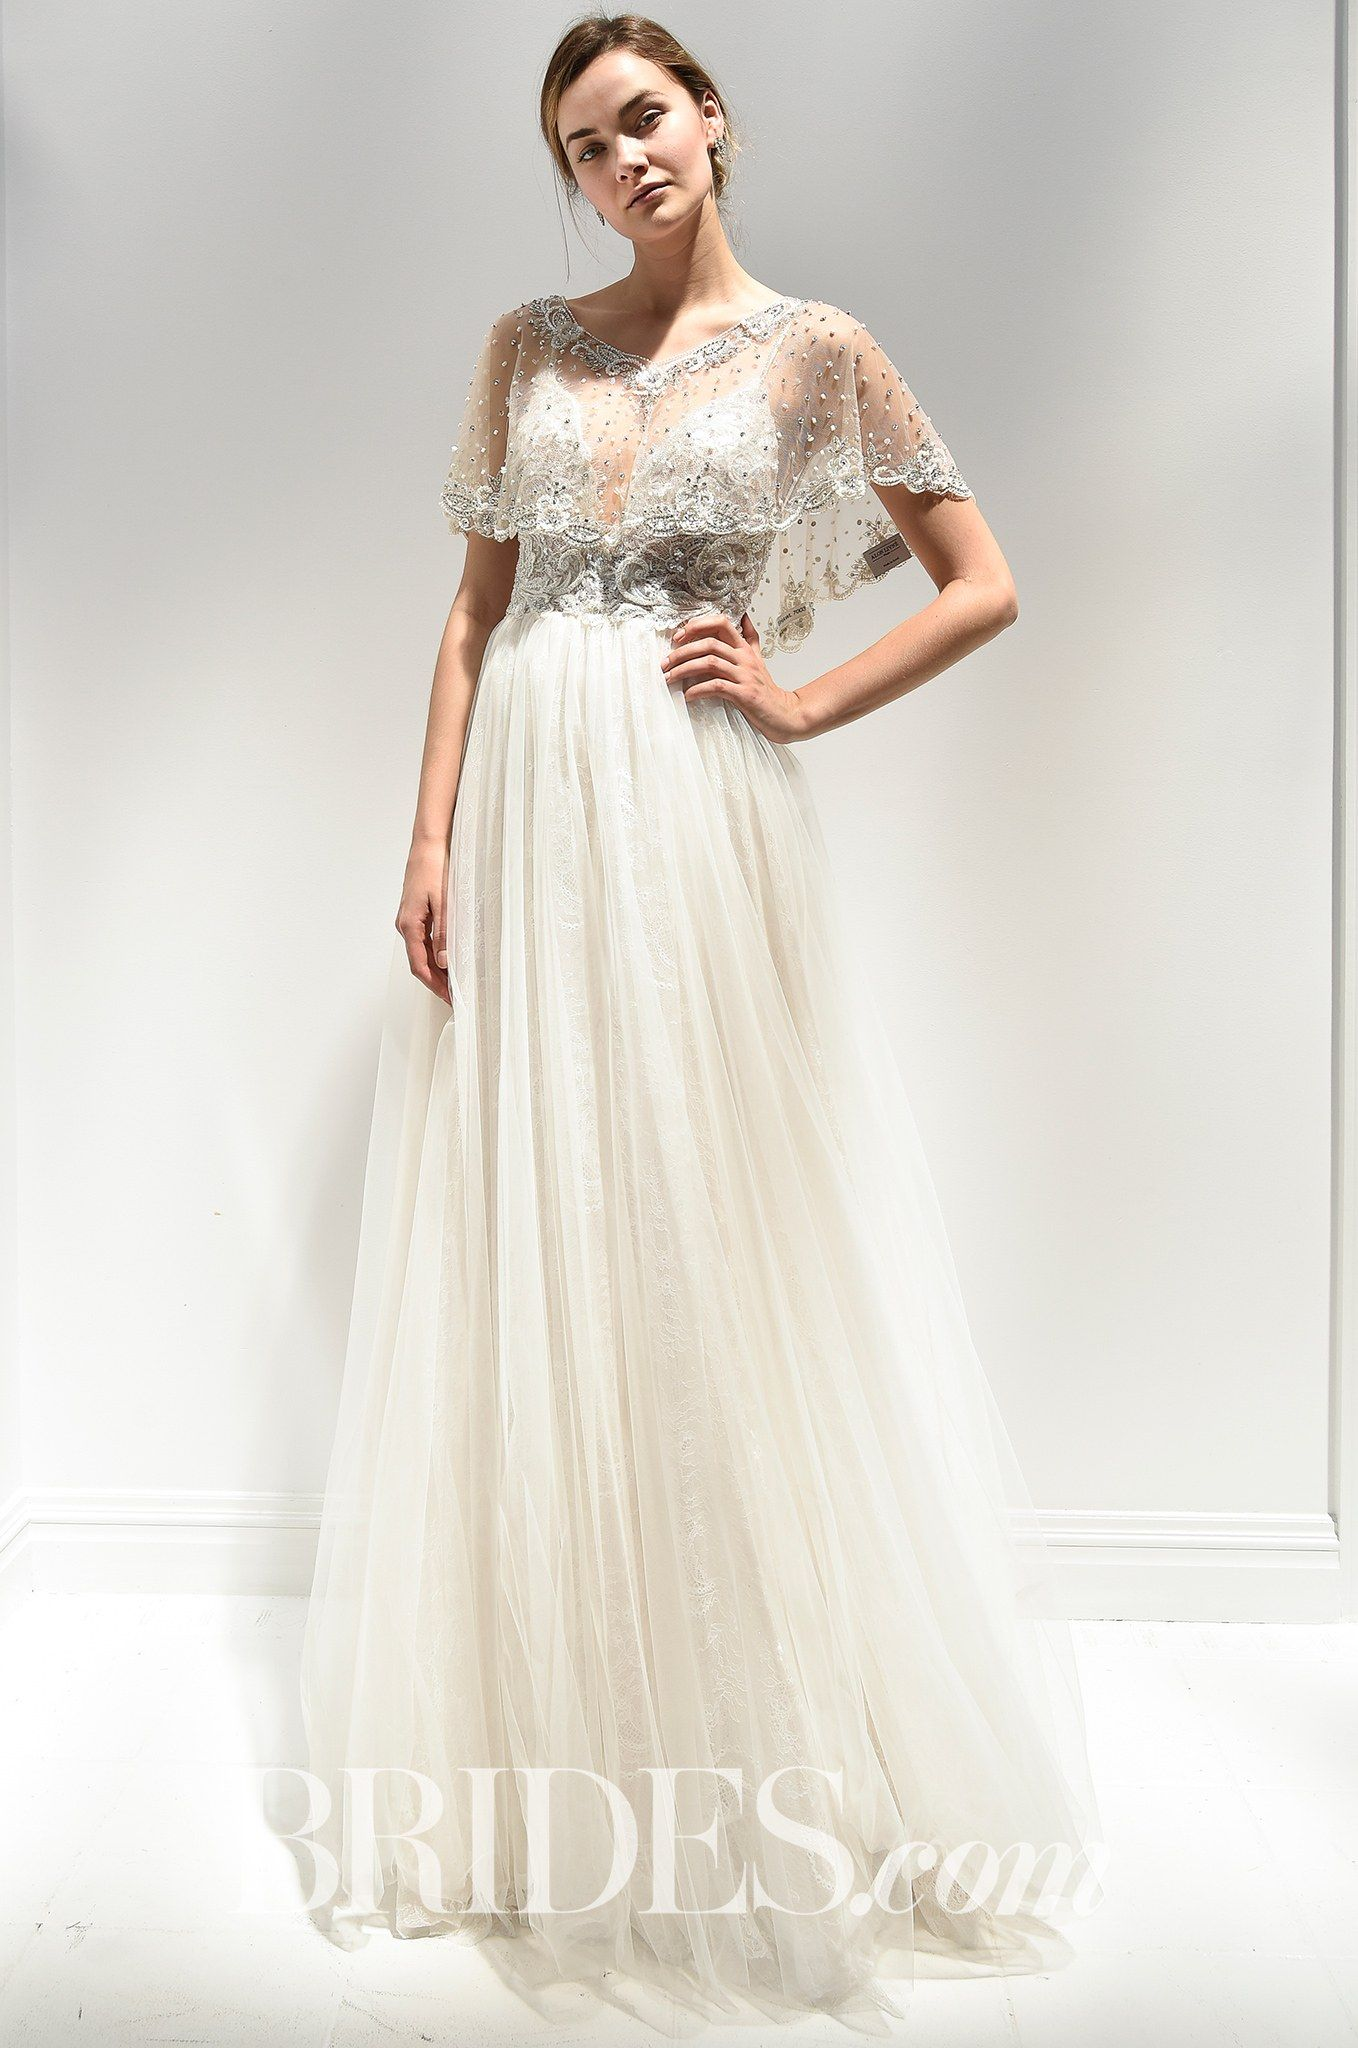 Bridal Spring Alon Livnes Vintage Hollywood Took His Usual Lavishness To Understated